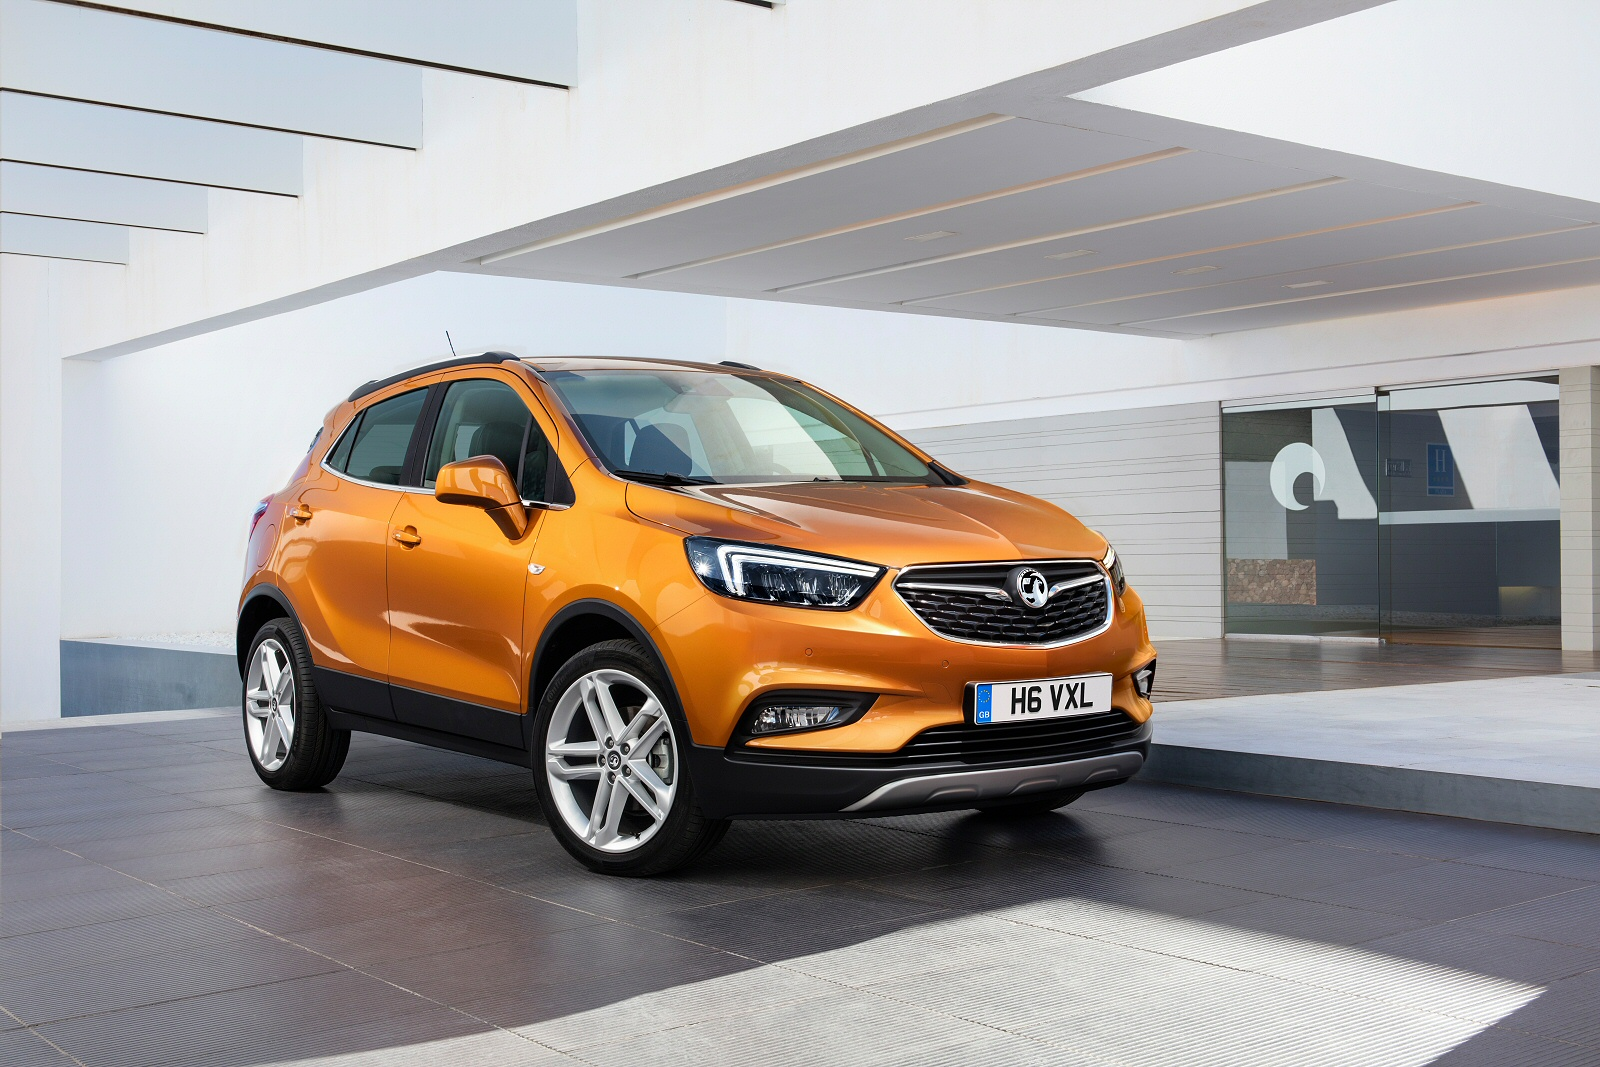 30d34d5a65 New Vauxhall Mokka X 1.4T Active 5dr Auto Petrol Hatchback for Sale ...